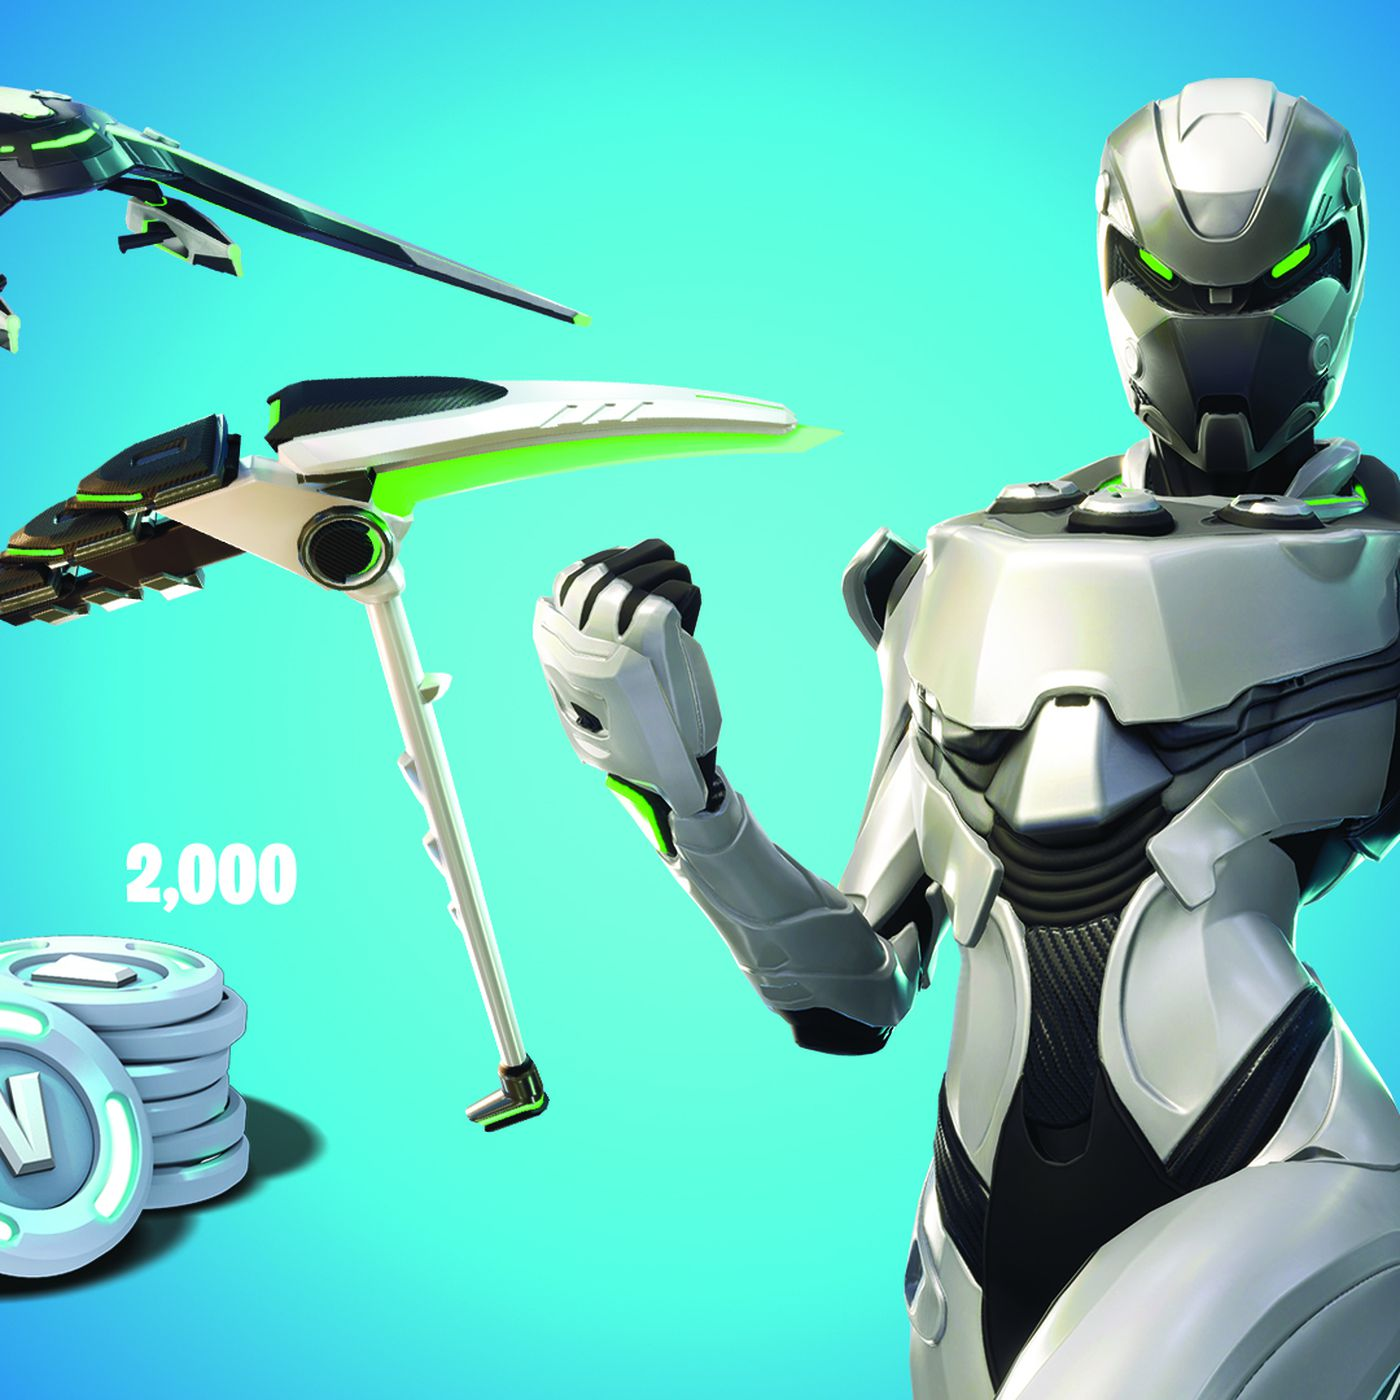 How To Find Fortnite Purchase On Xbox One Exclusive Fortnite Skin For New Xbox Bundle Makes You Look Like An Xbox The Verge